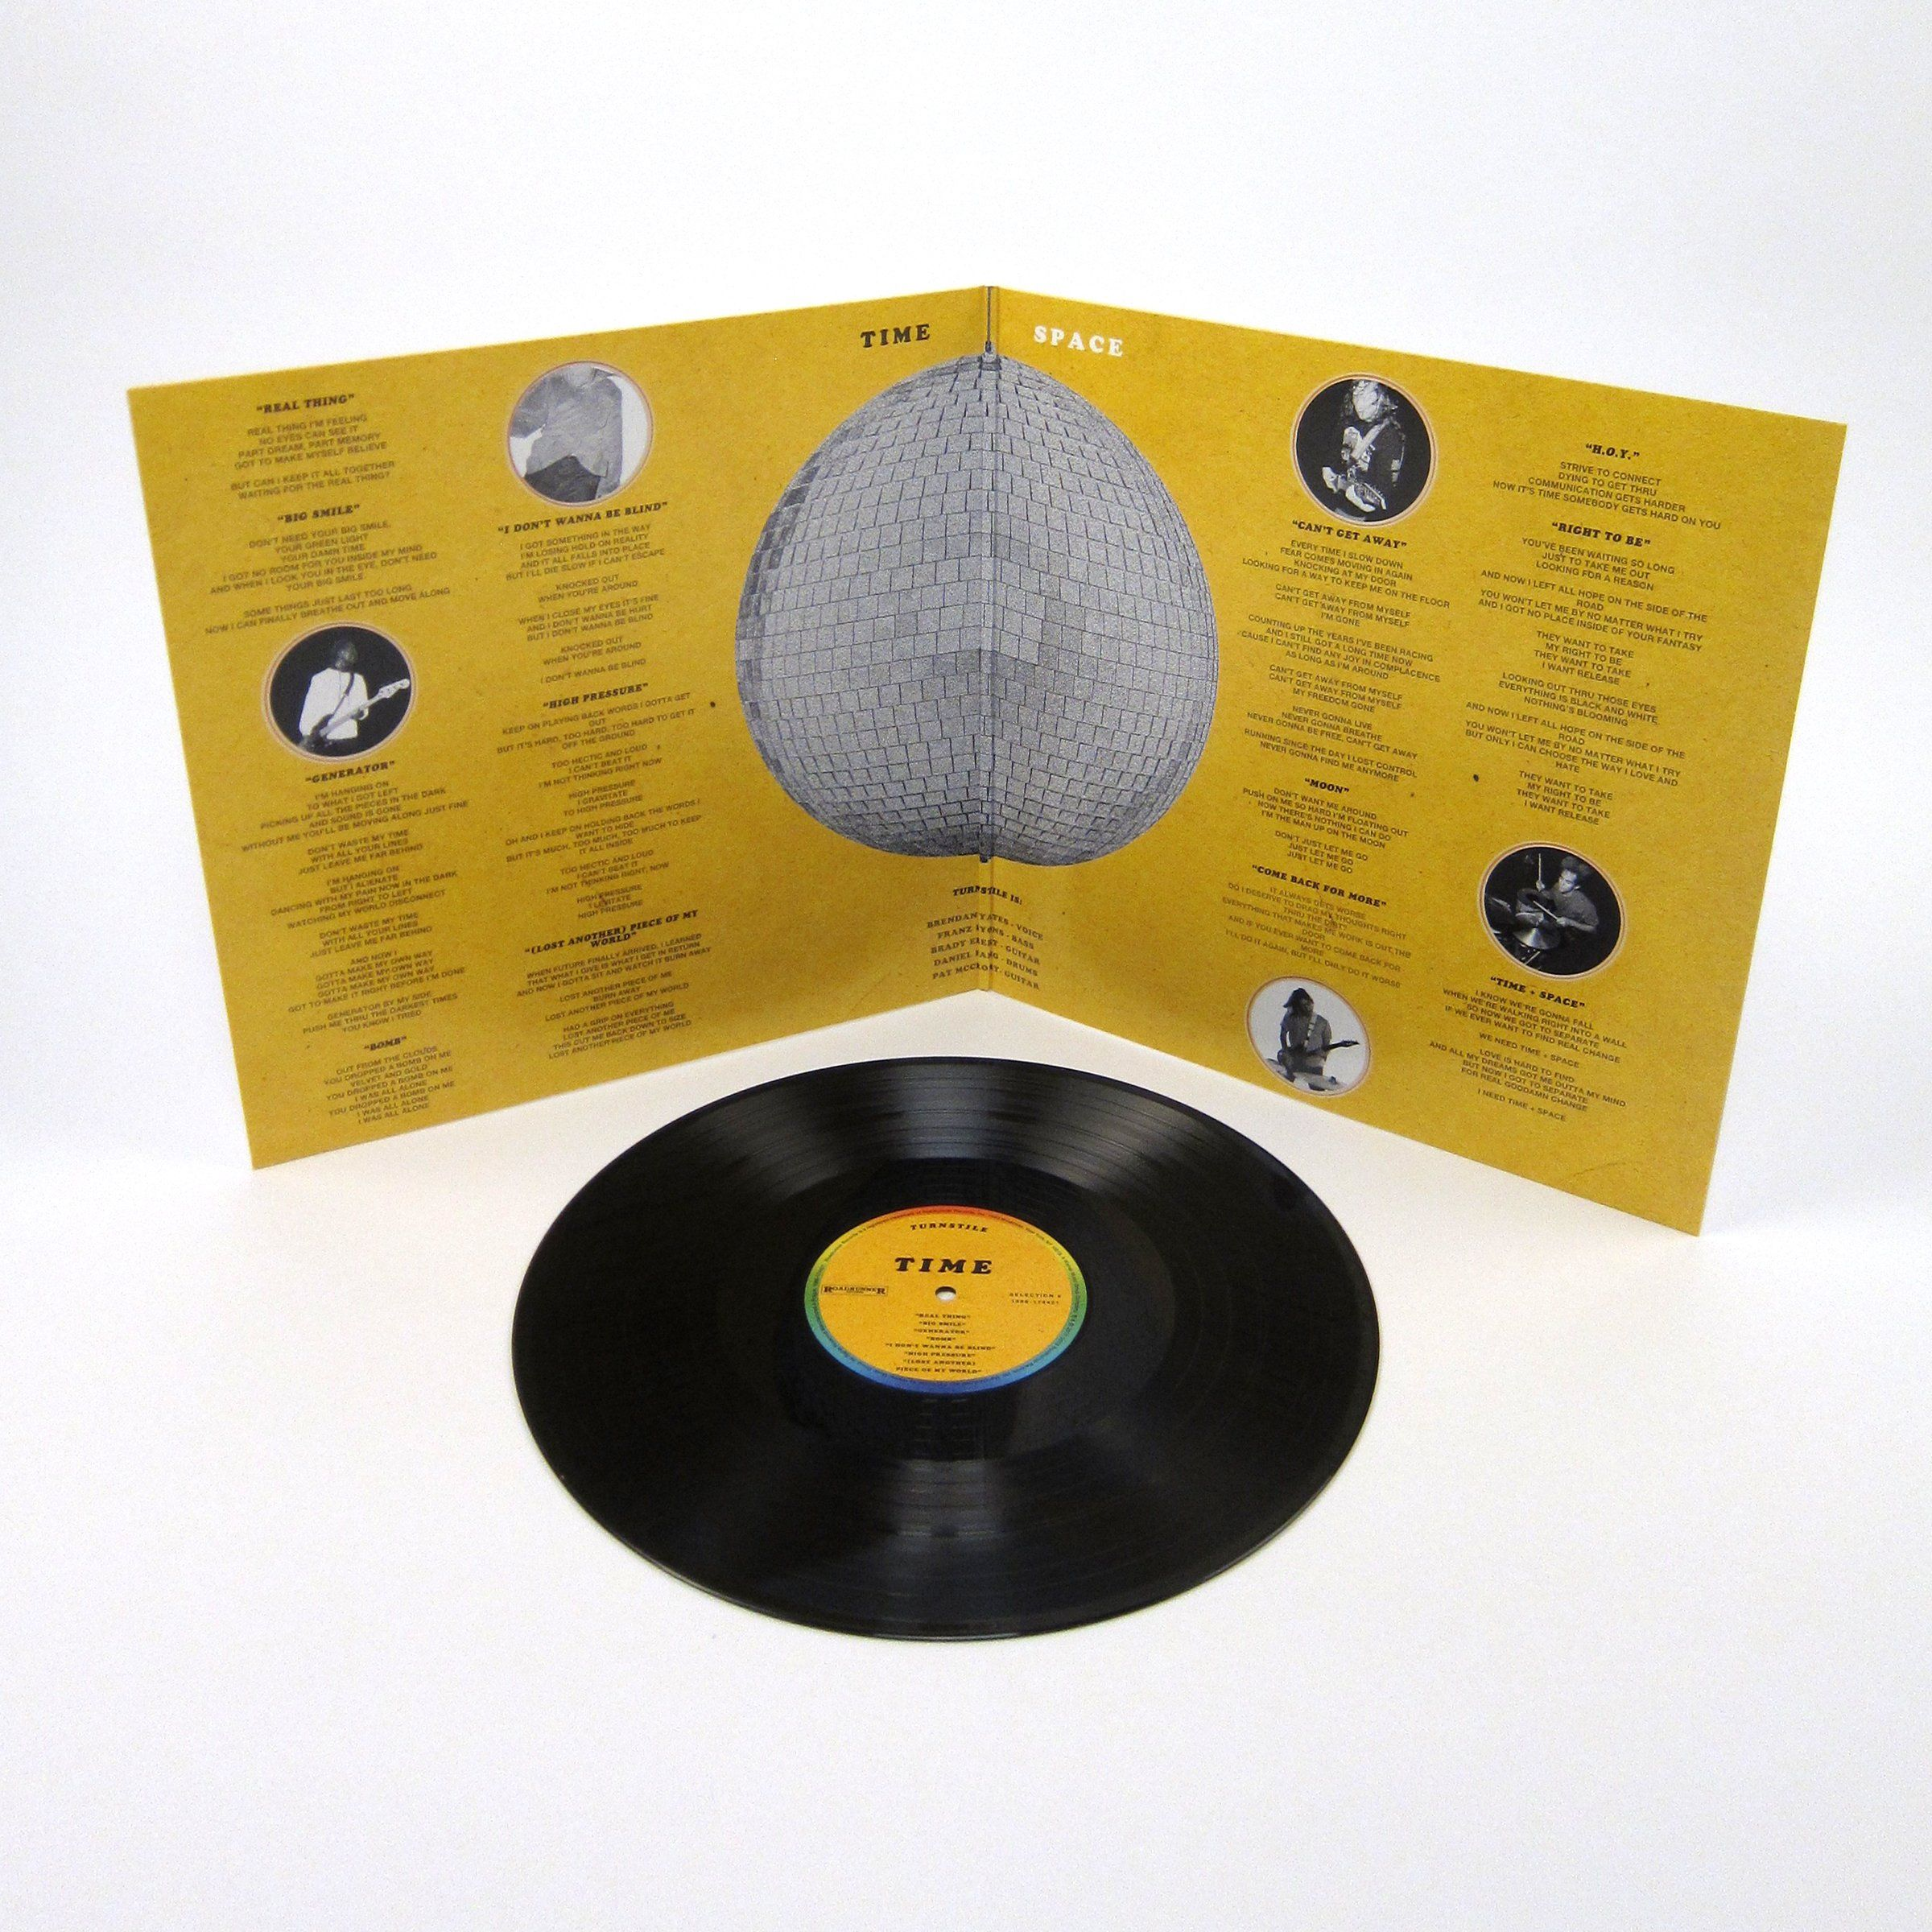 Turnstile Time & Space Vinyl LP | Products | Music labels